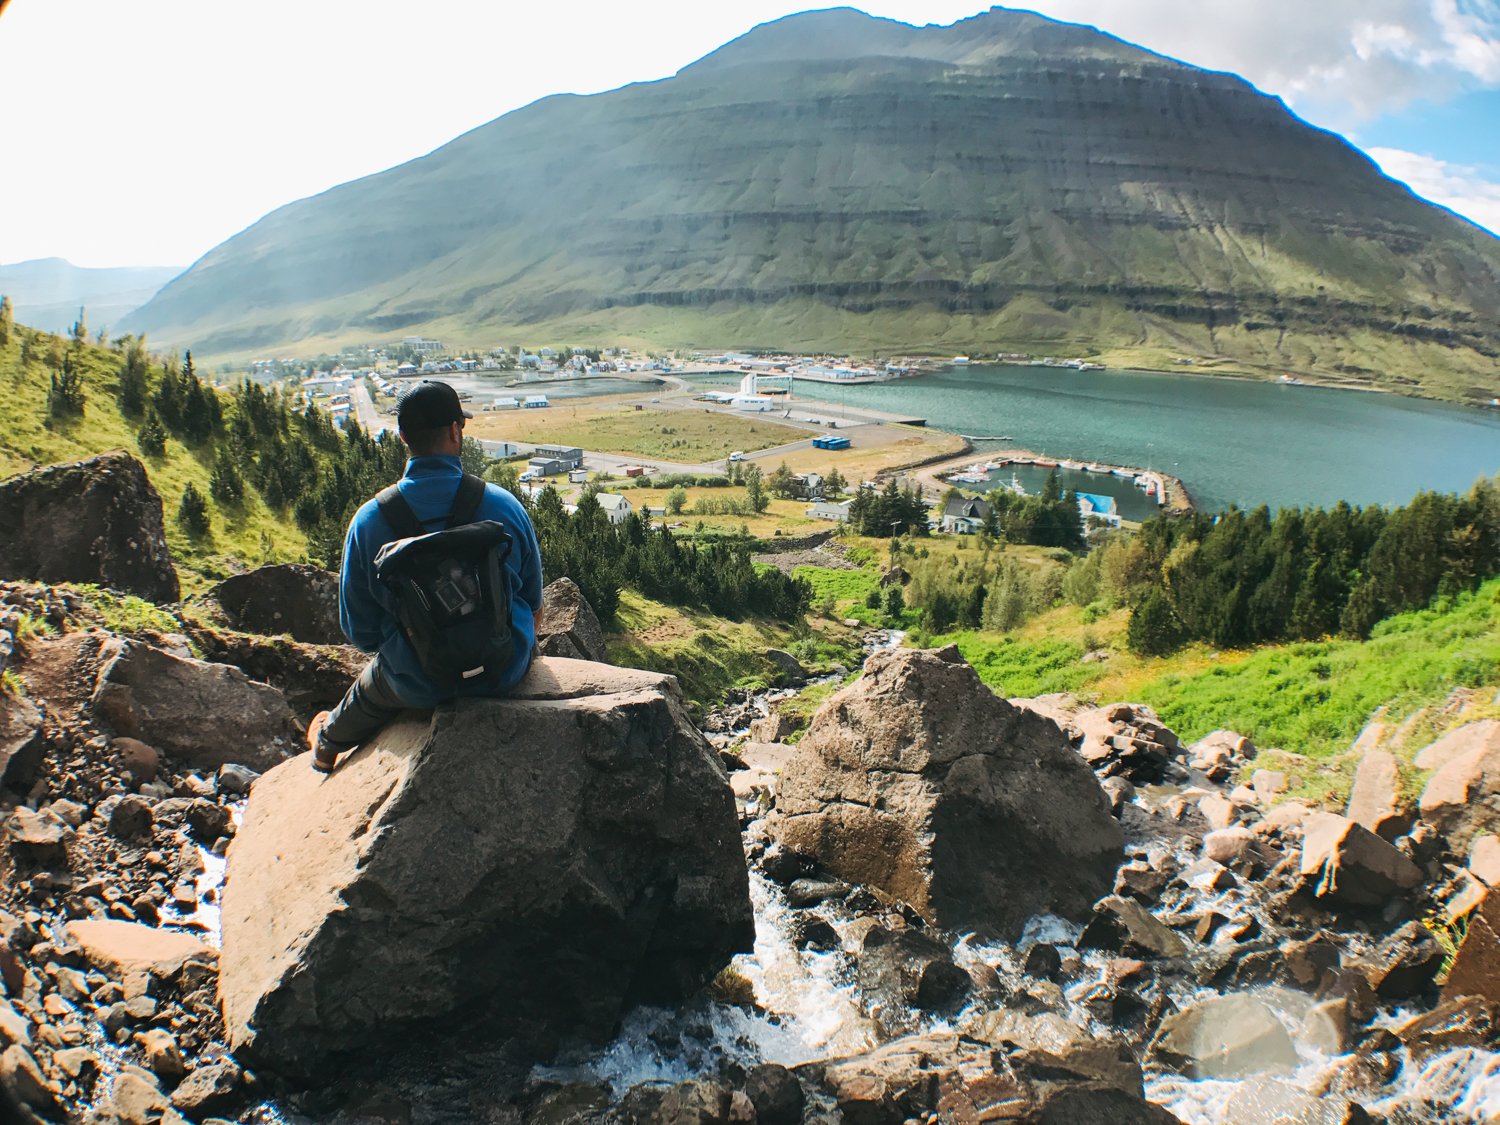 seydisfjordur-view-mountain-waterfall-town-valley.jpg